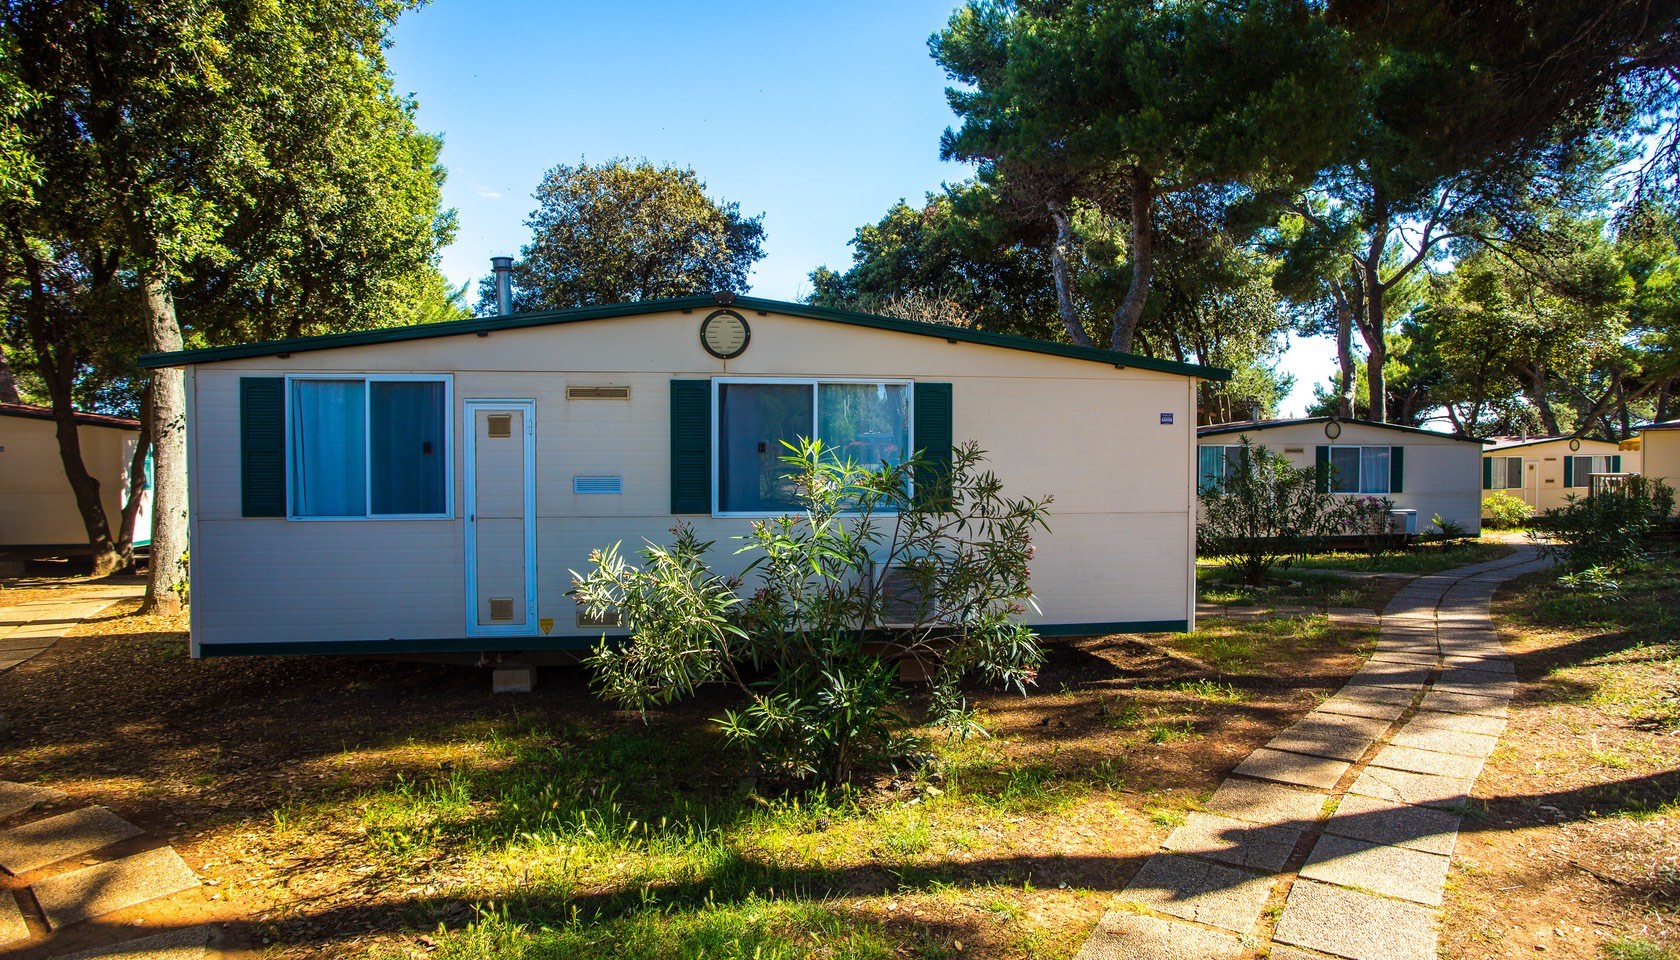 Camping mobilhome lot